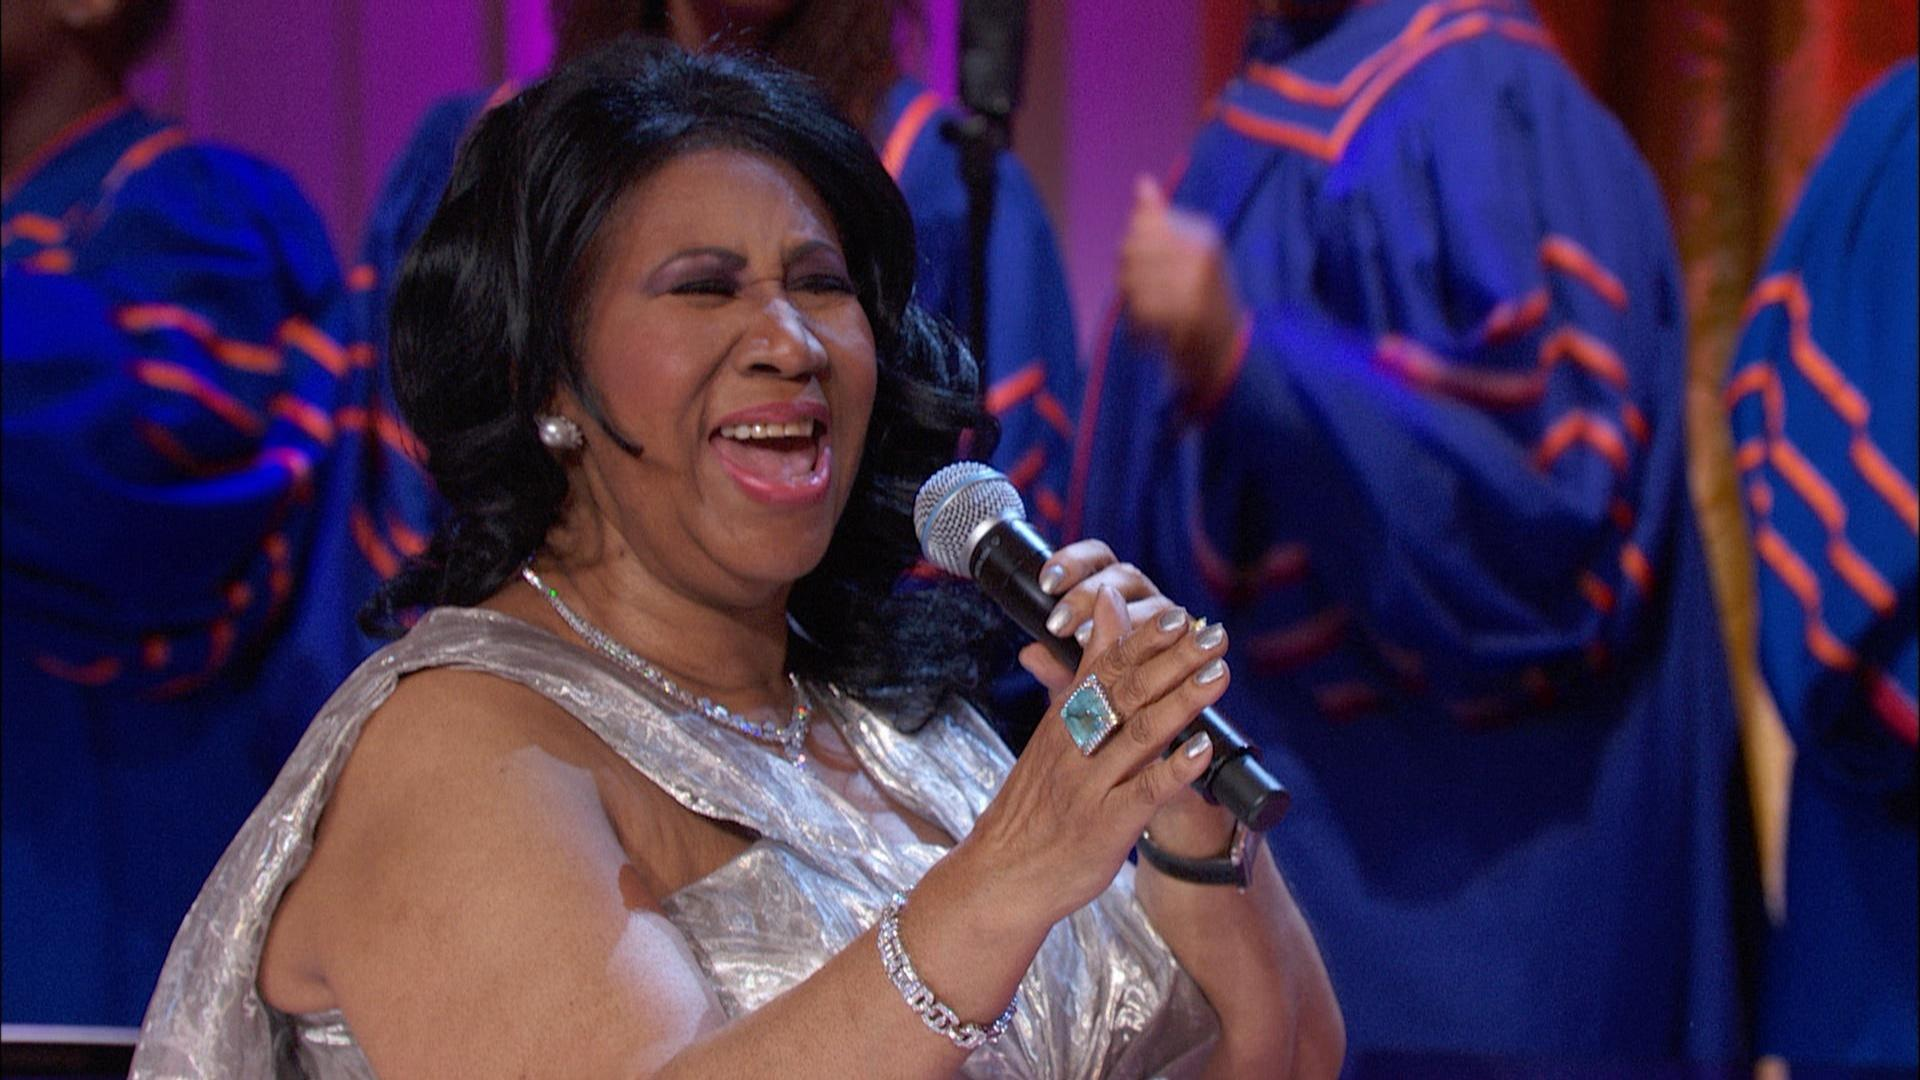 aretha franklin performs  u0026quot plant my feet on higher ground